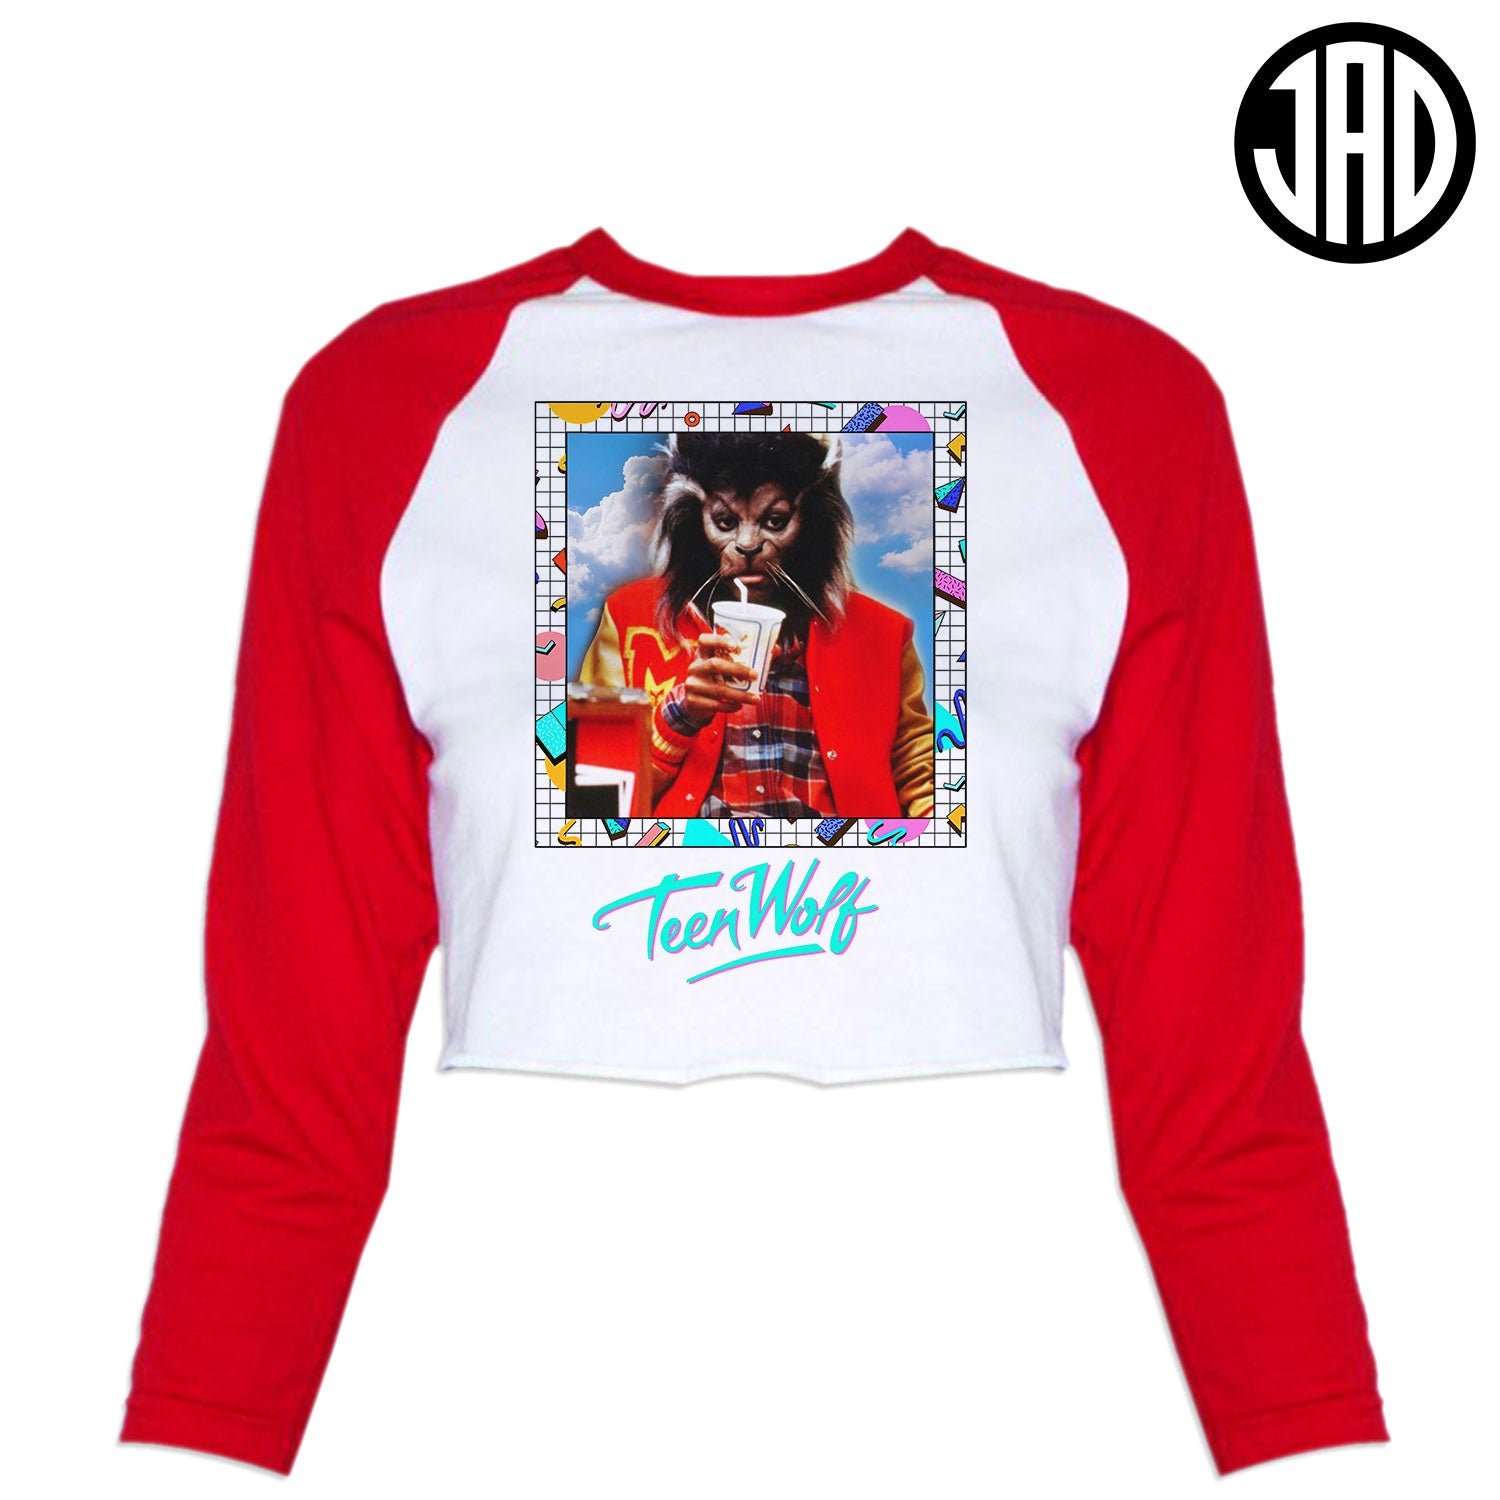 Teenage Wolf - Women's Cropped Baseball Tee